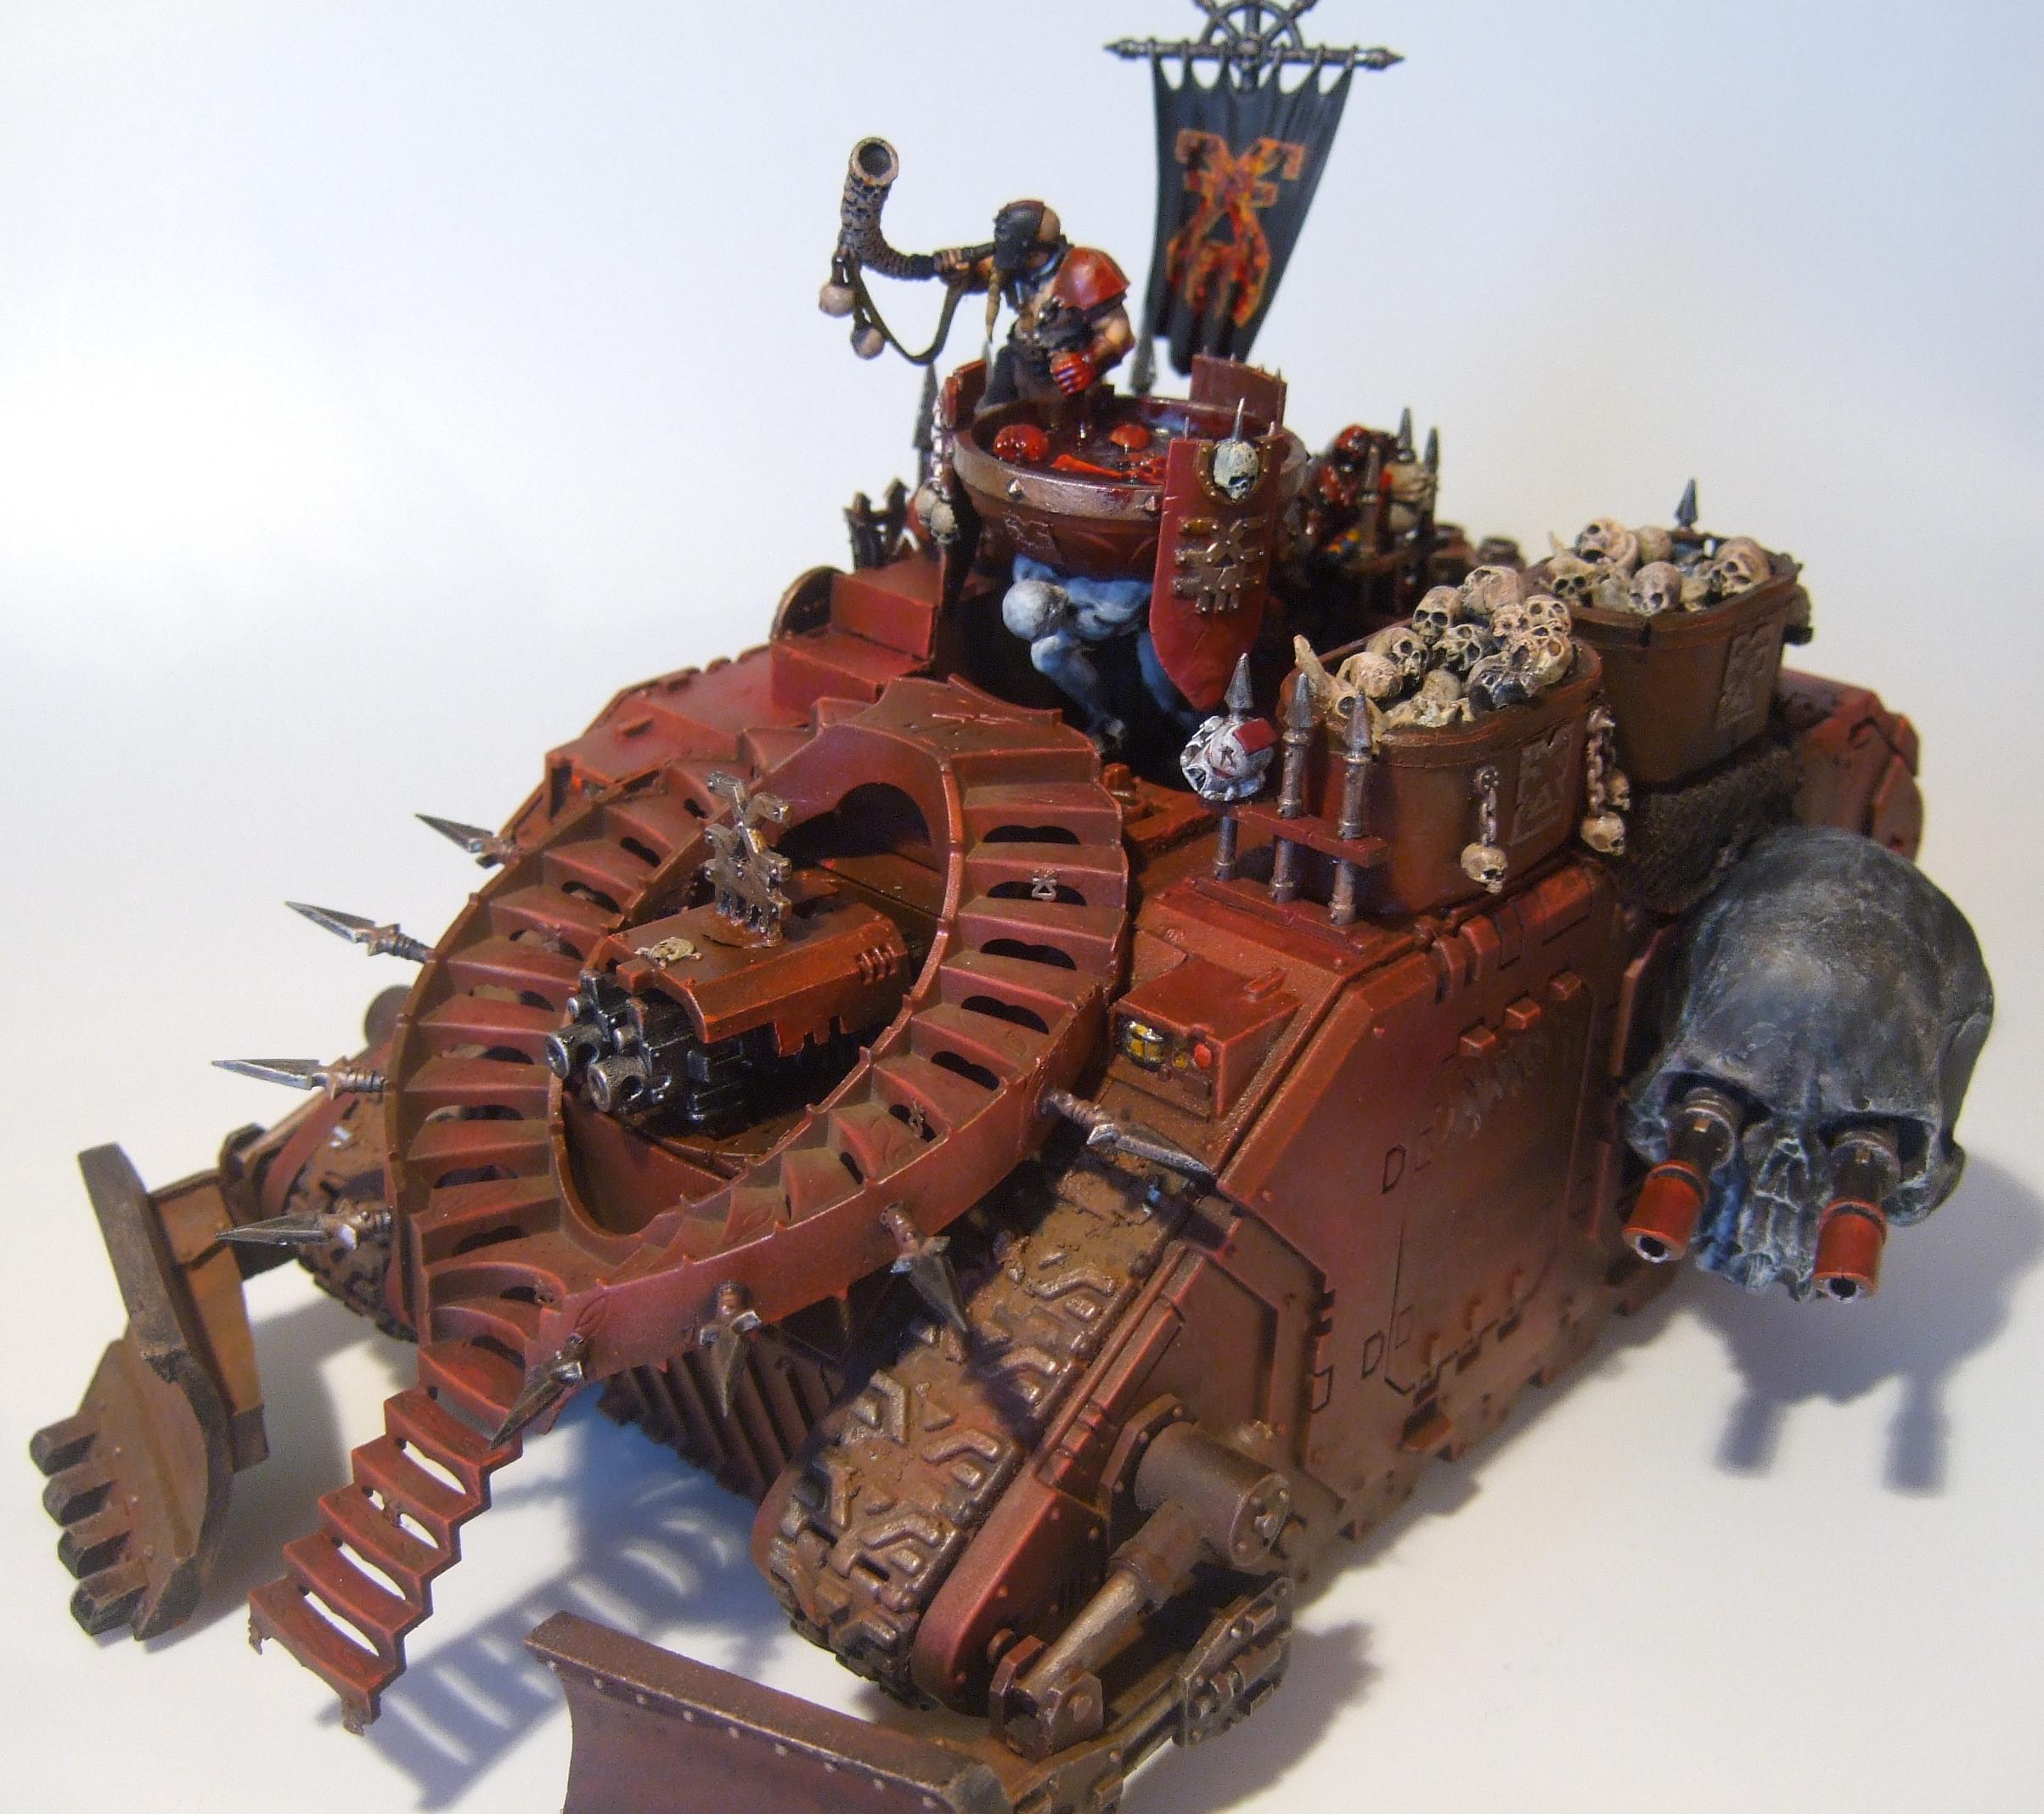 Blood, Chaos Space Marines, Khorne, Over The Top, Skull